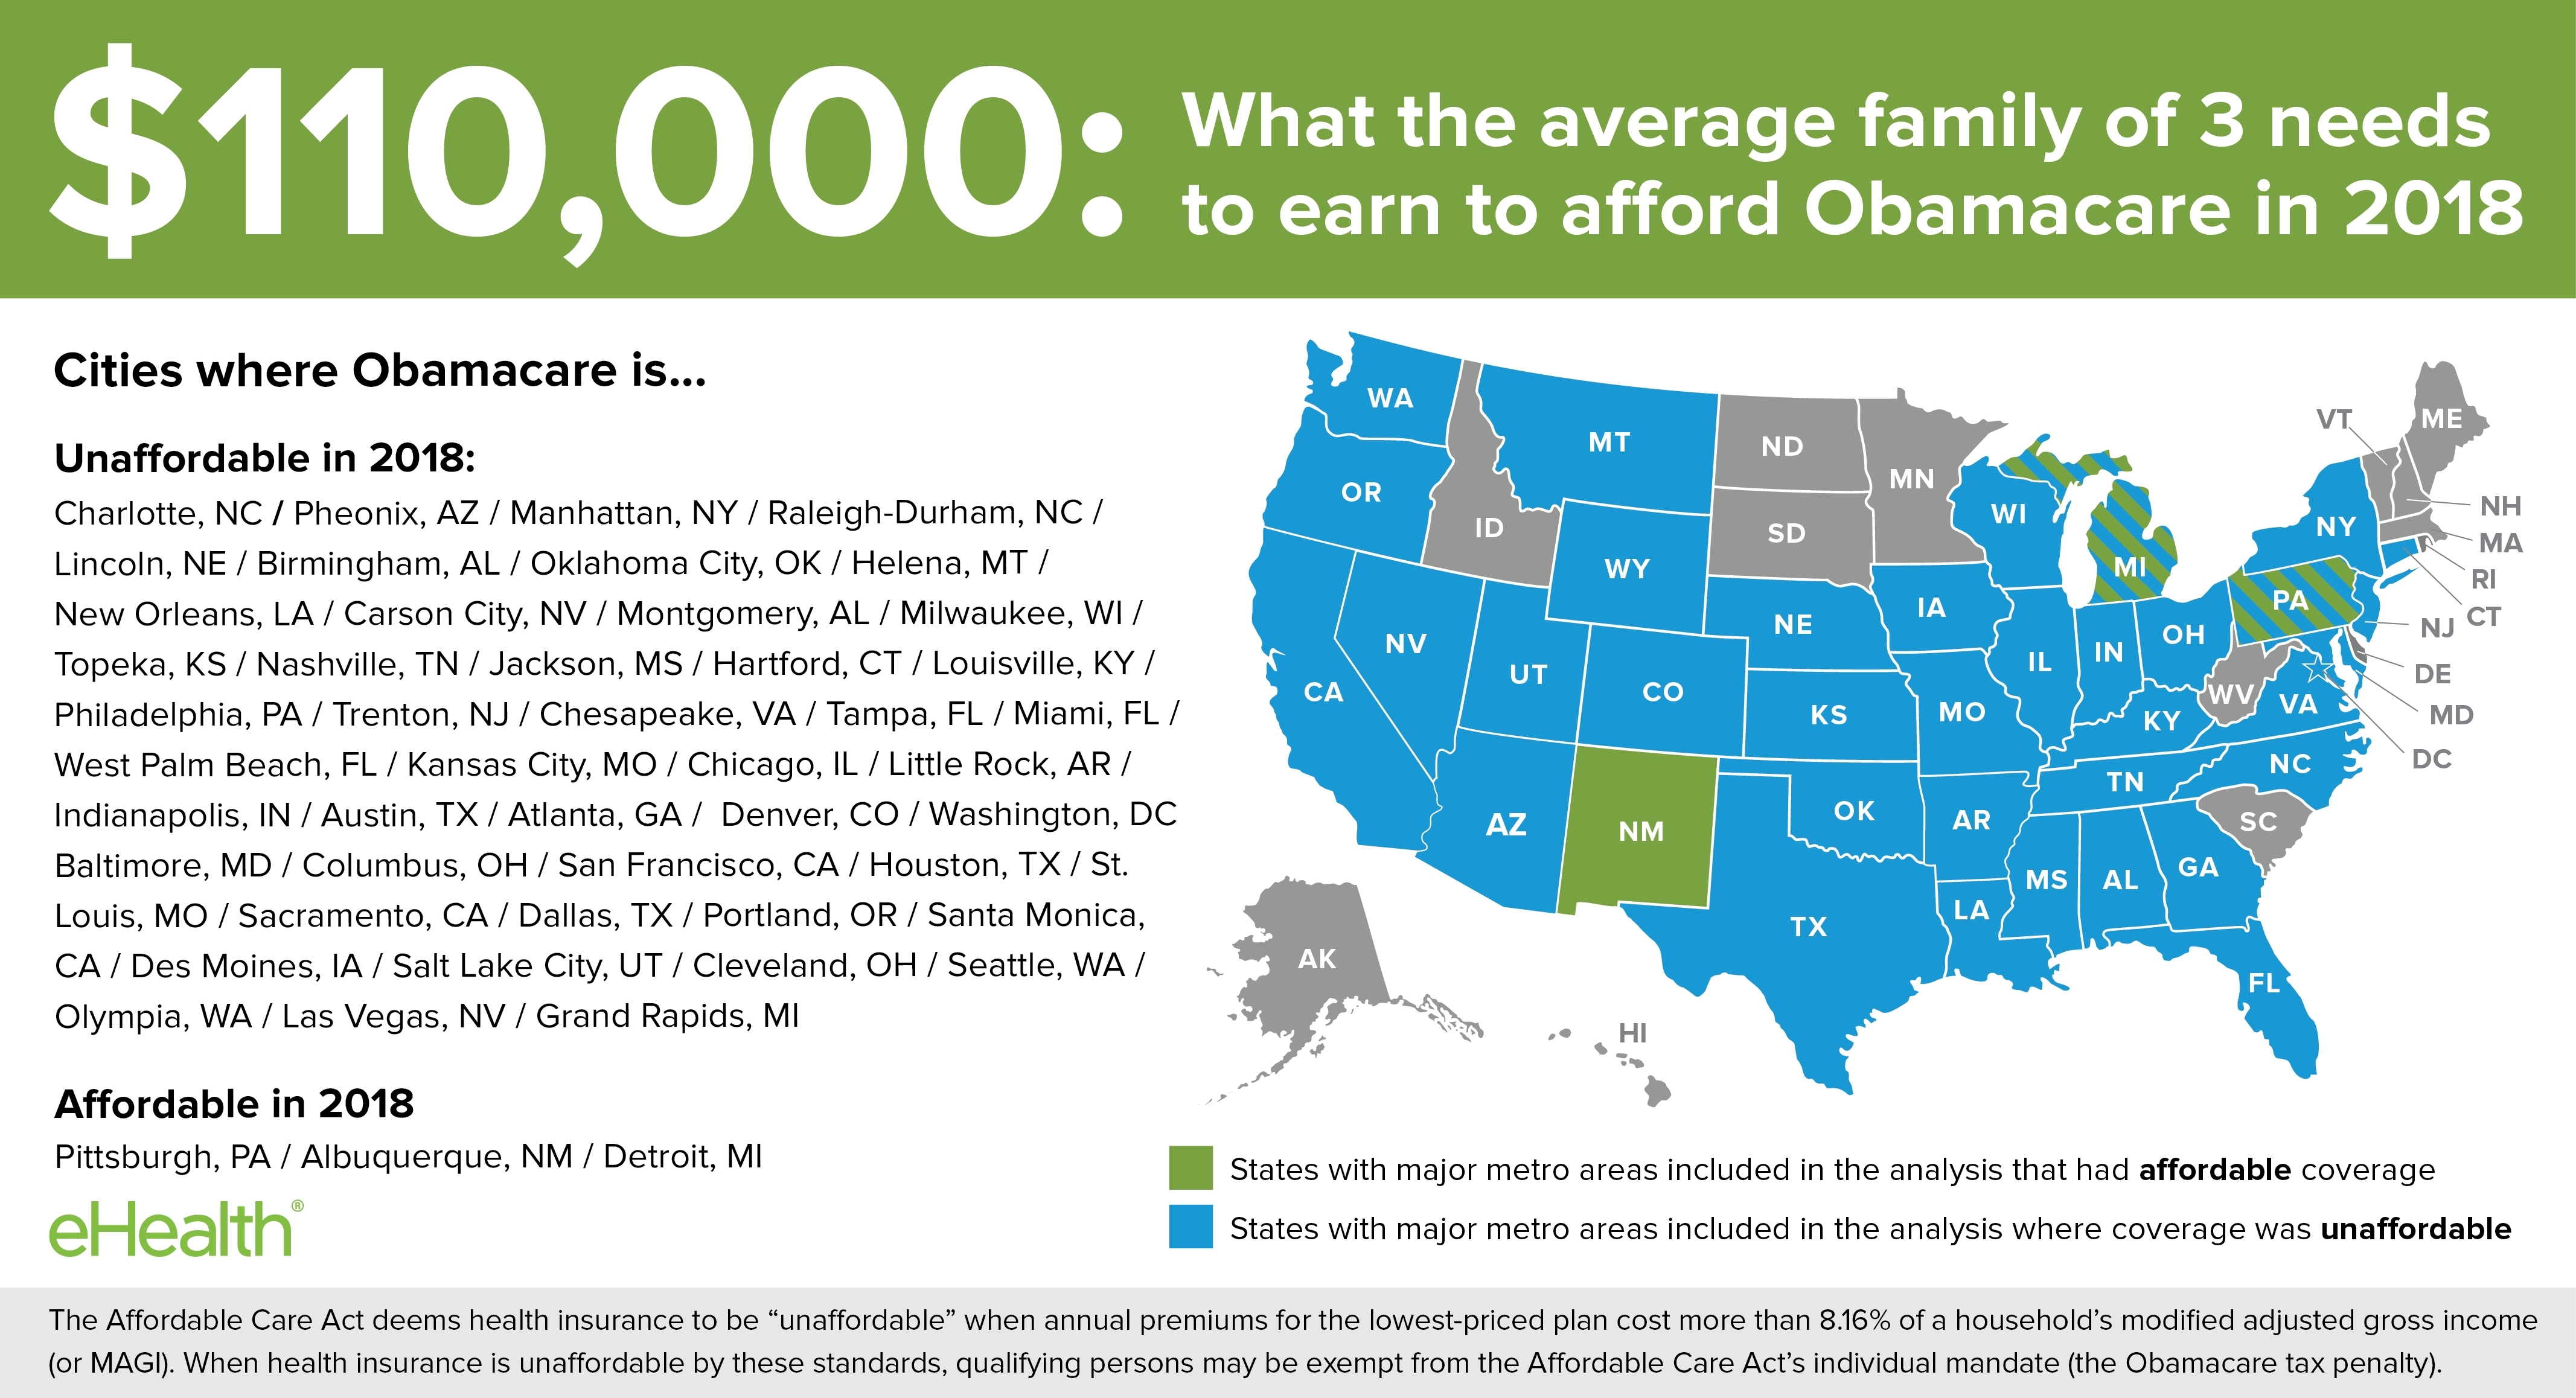 Affordable Care Act Health Insurance Will Be Unaffordable in 2018 ...